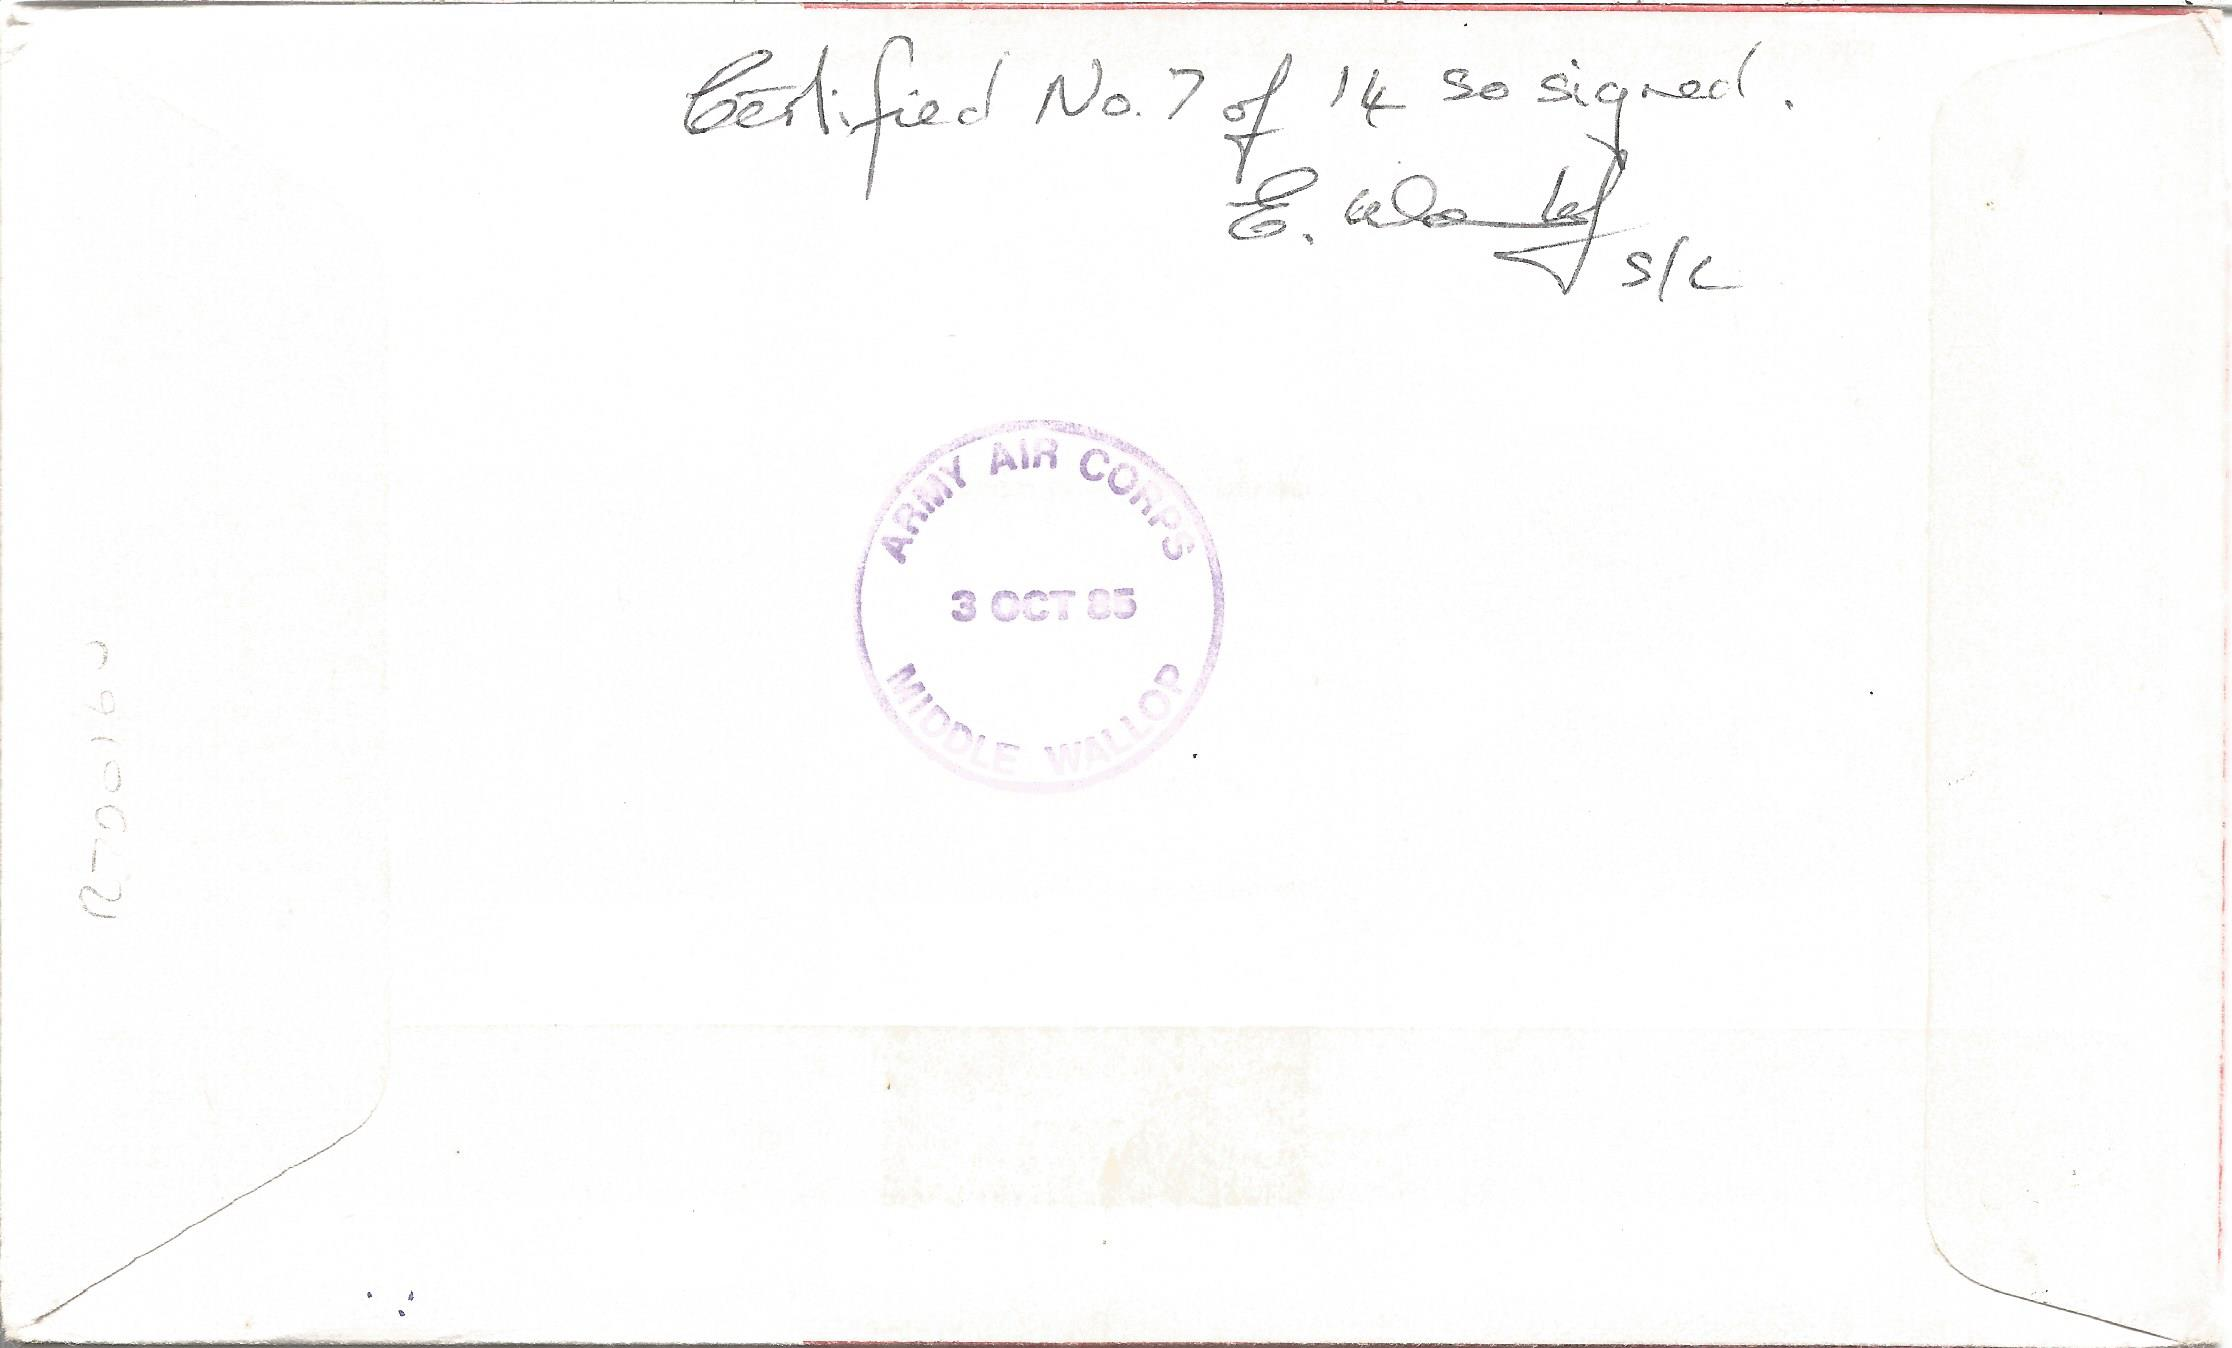 WW2 15 OBE winners multiple signed RAF medal cover. Includes Air Chief Marshal Sir H. Broadhurst, - Image 2 of 2